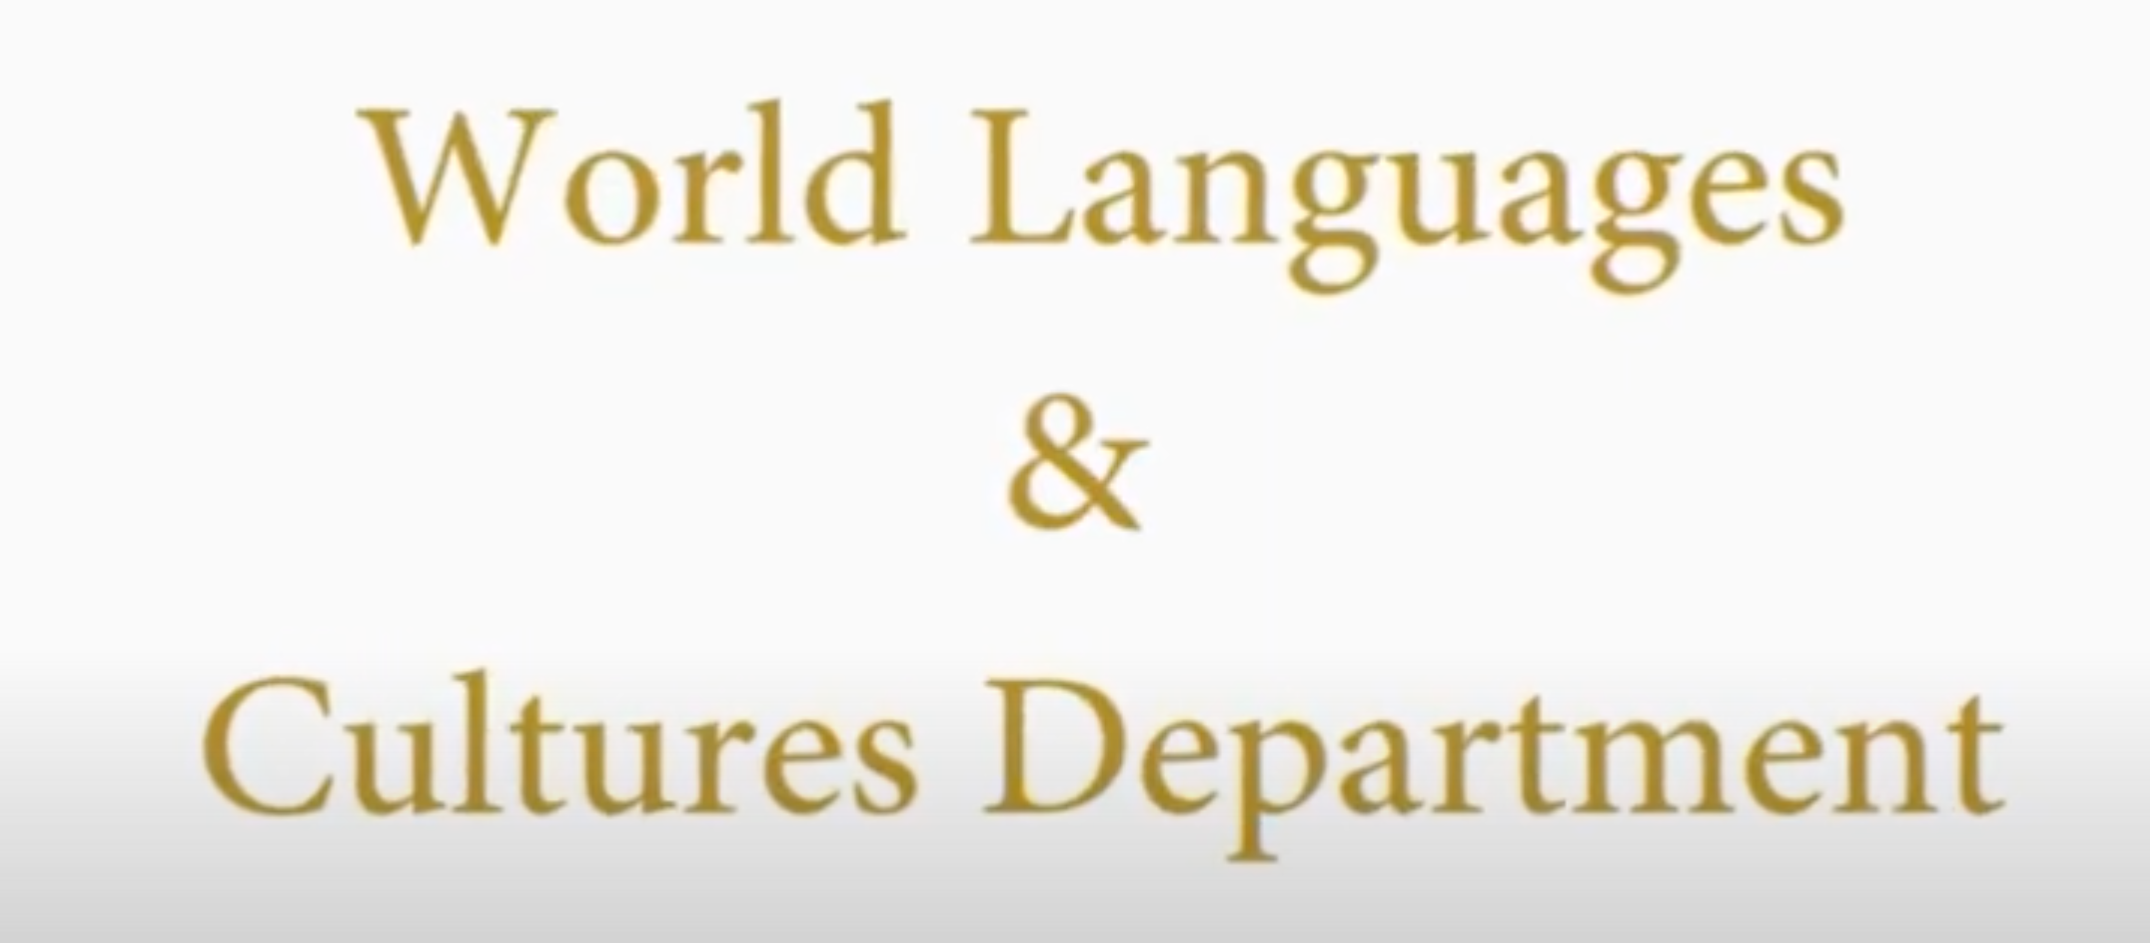 Introduction to the WLC Department